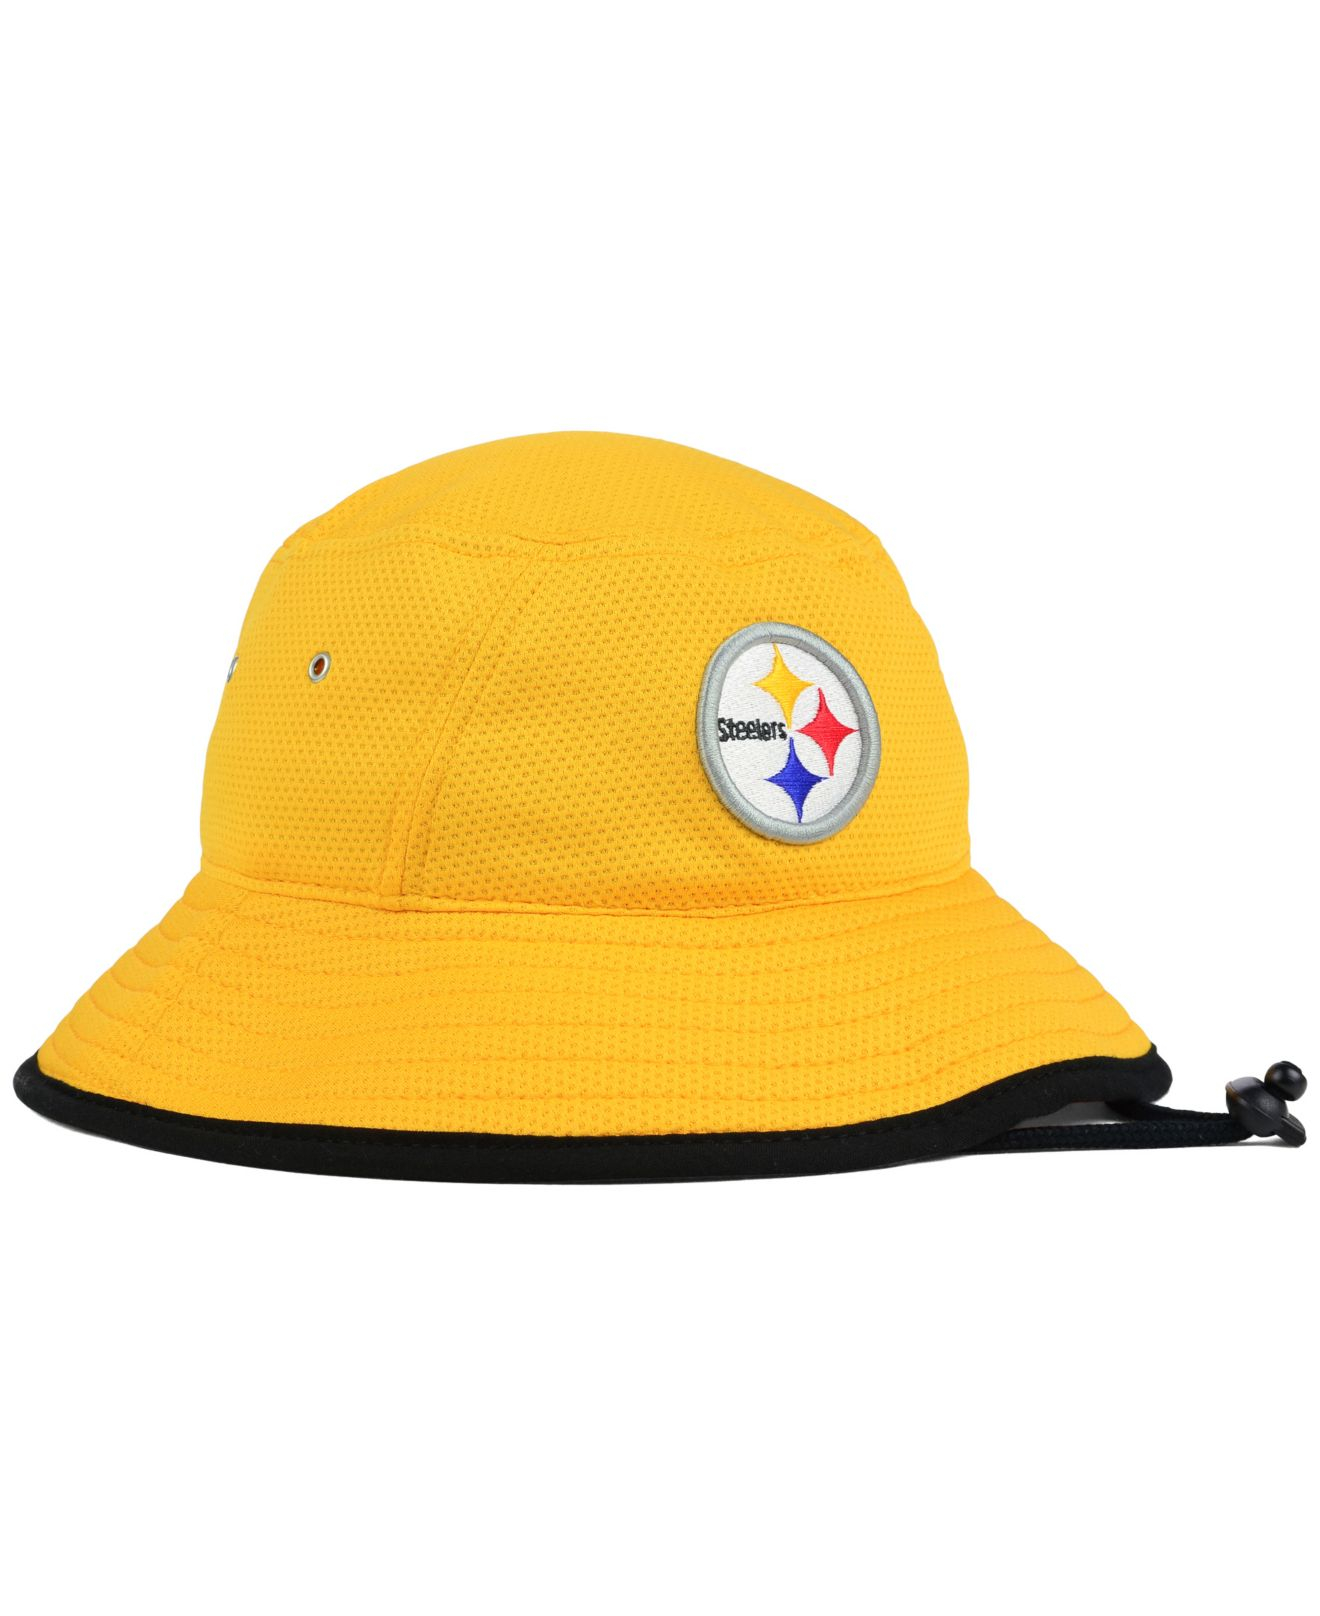 53b1d5292a5 Lyst - KTZ Pittsburgh Steelers Training Bucket Hat in Yellow for Men